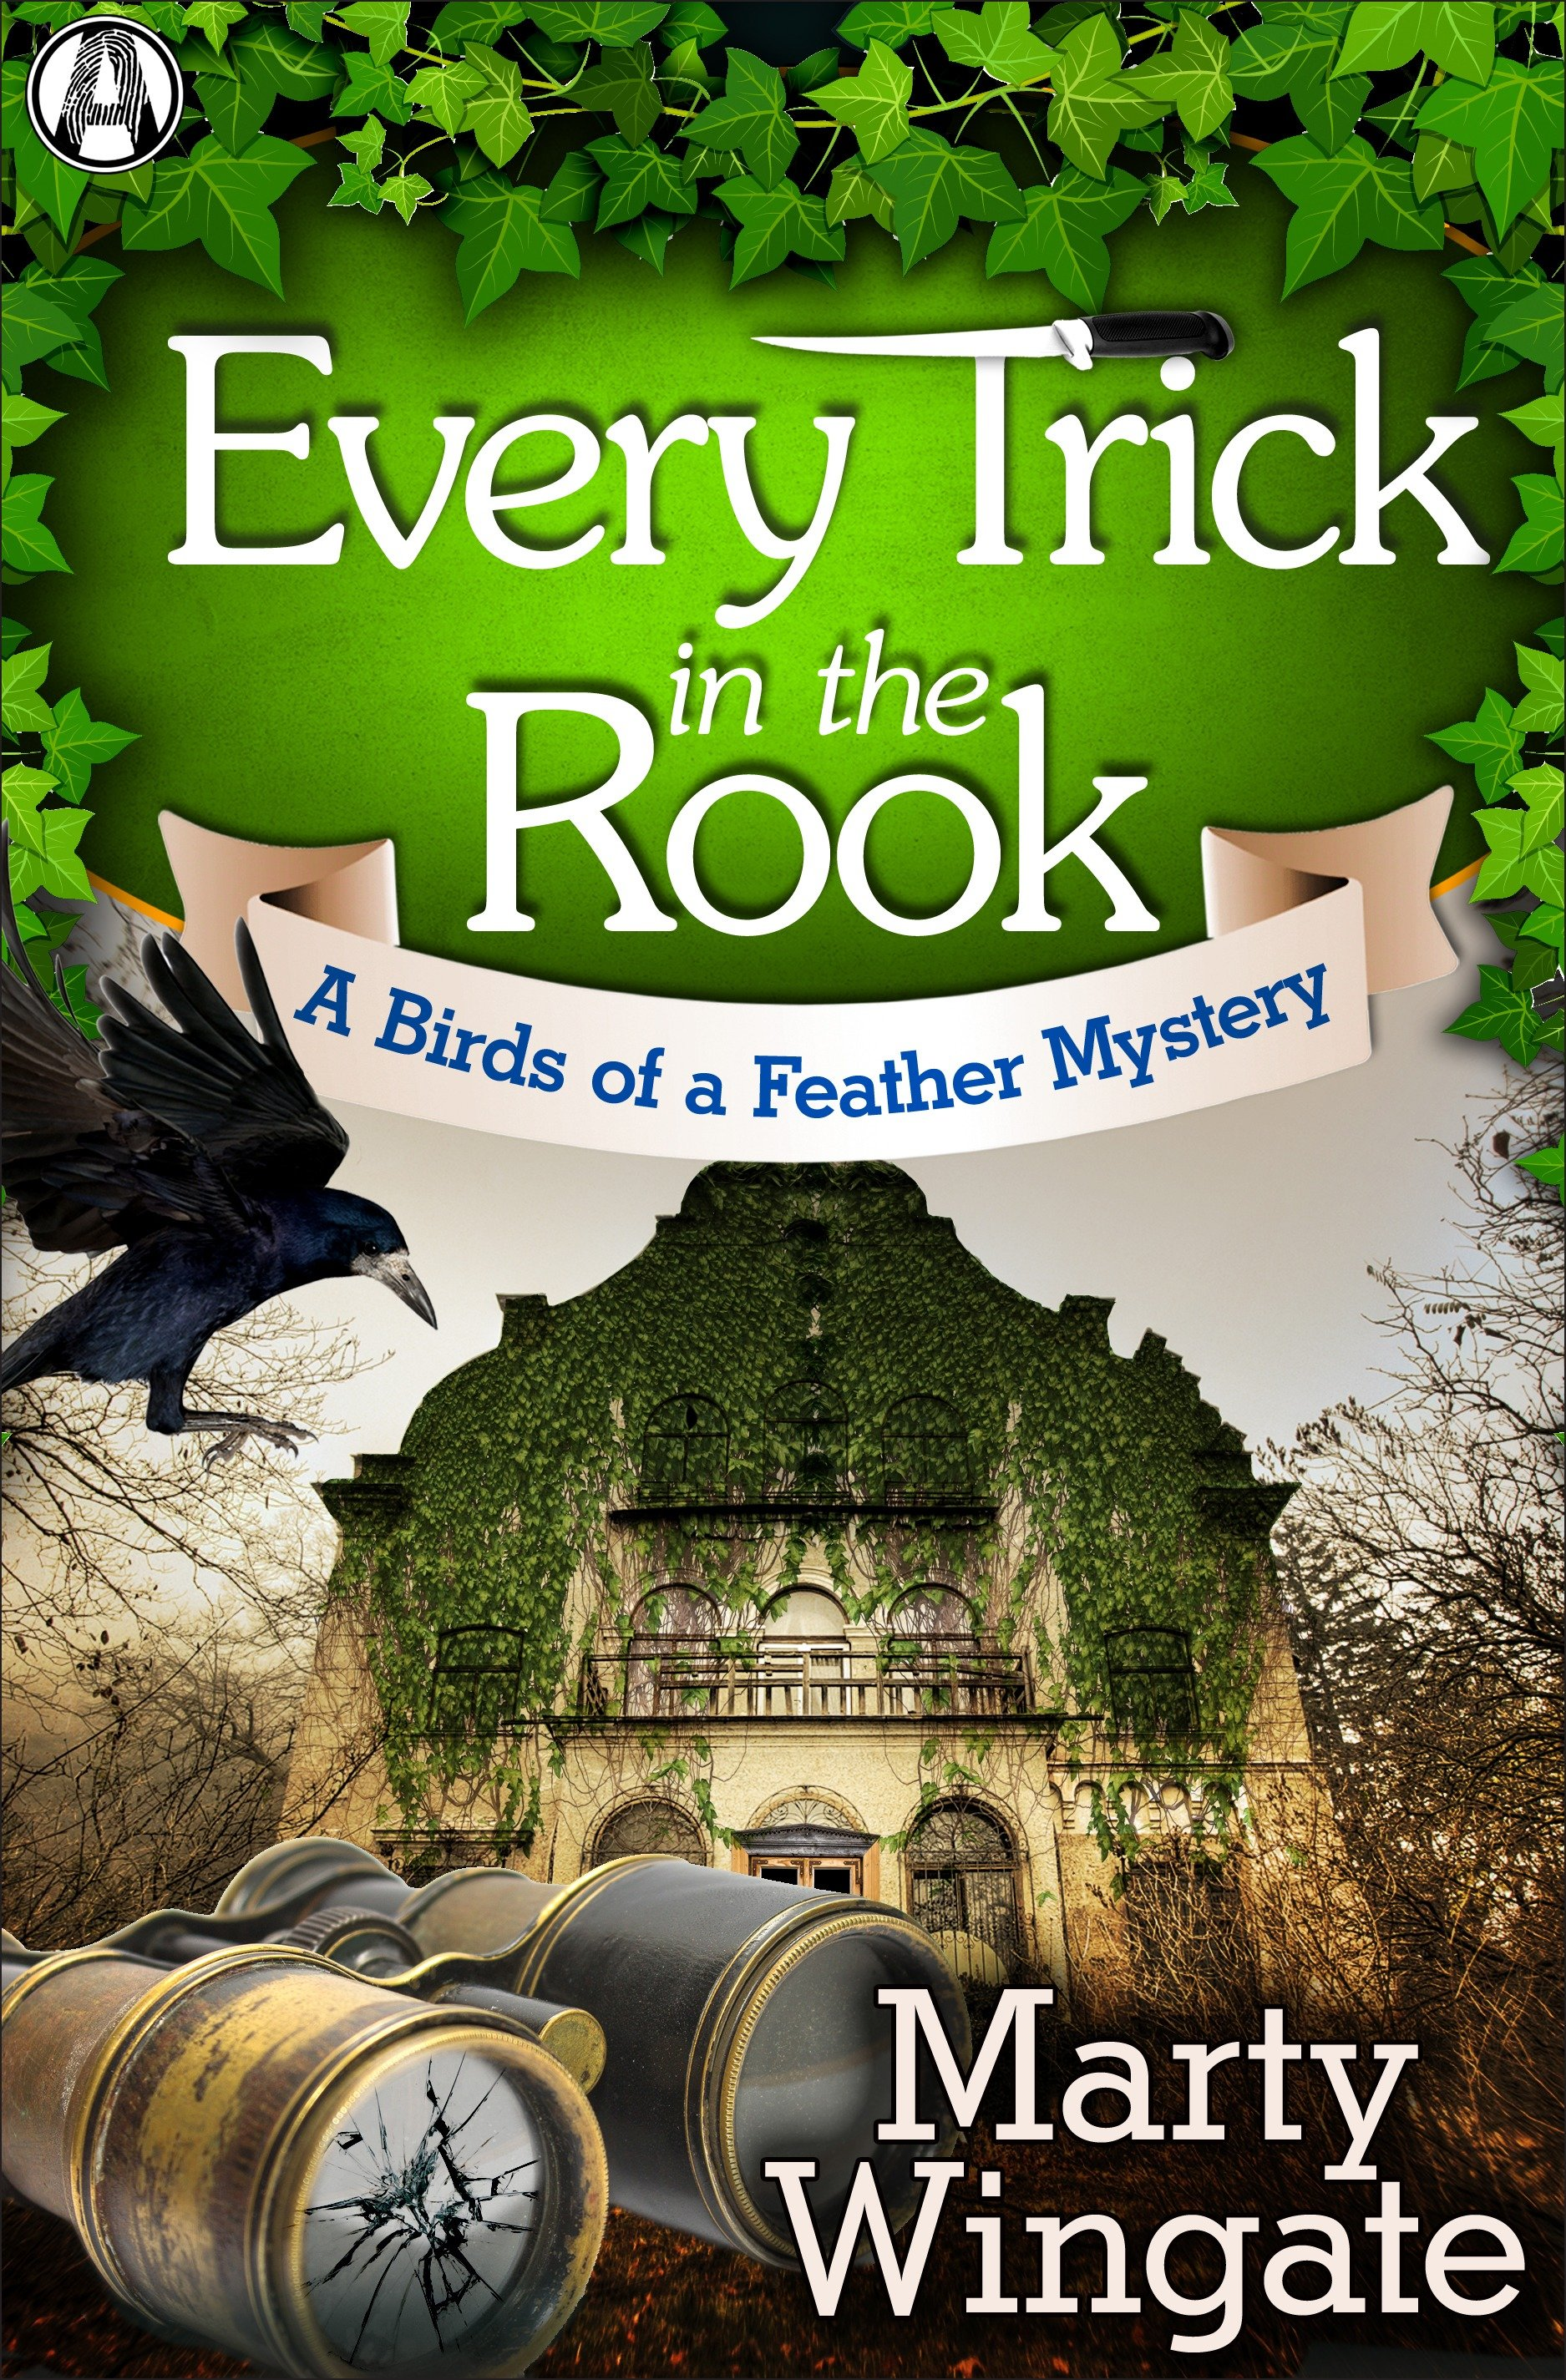 Every Trick in the Rook cover image